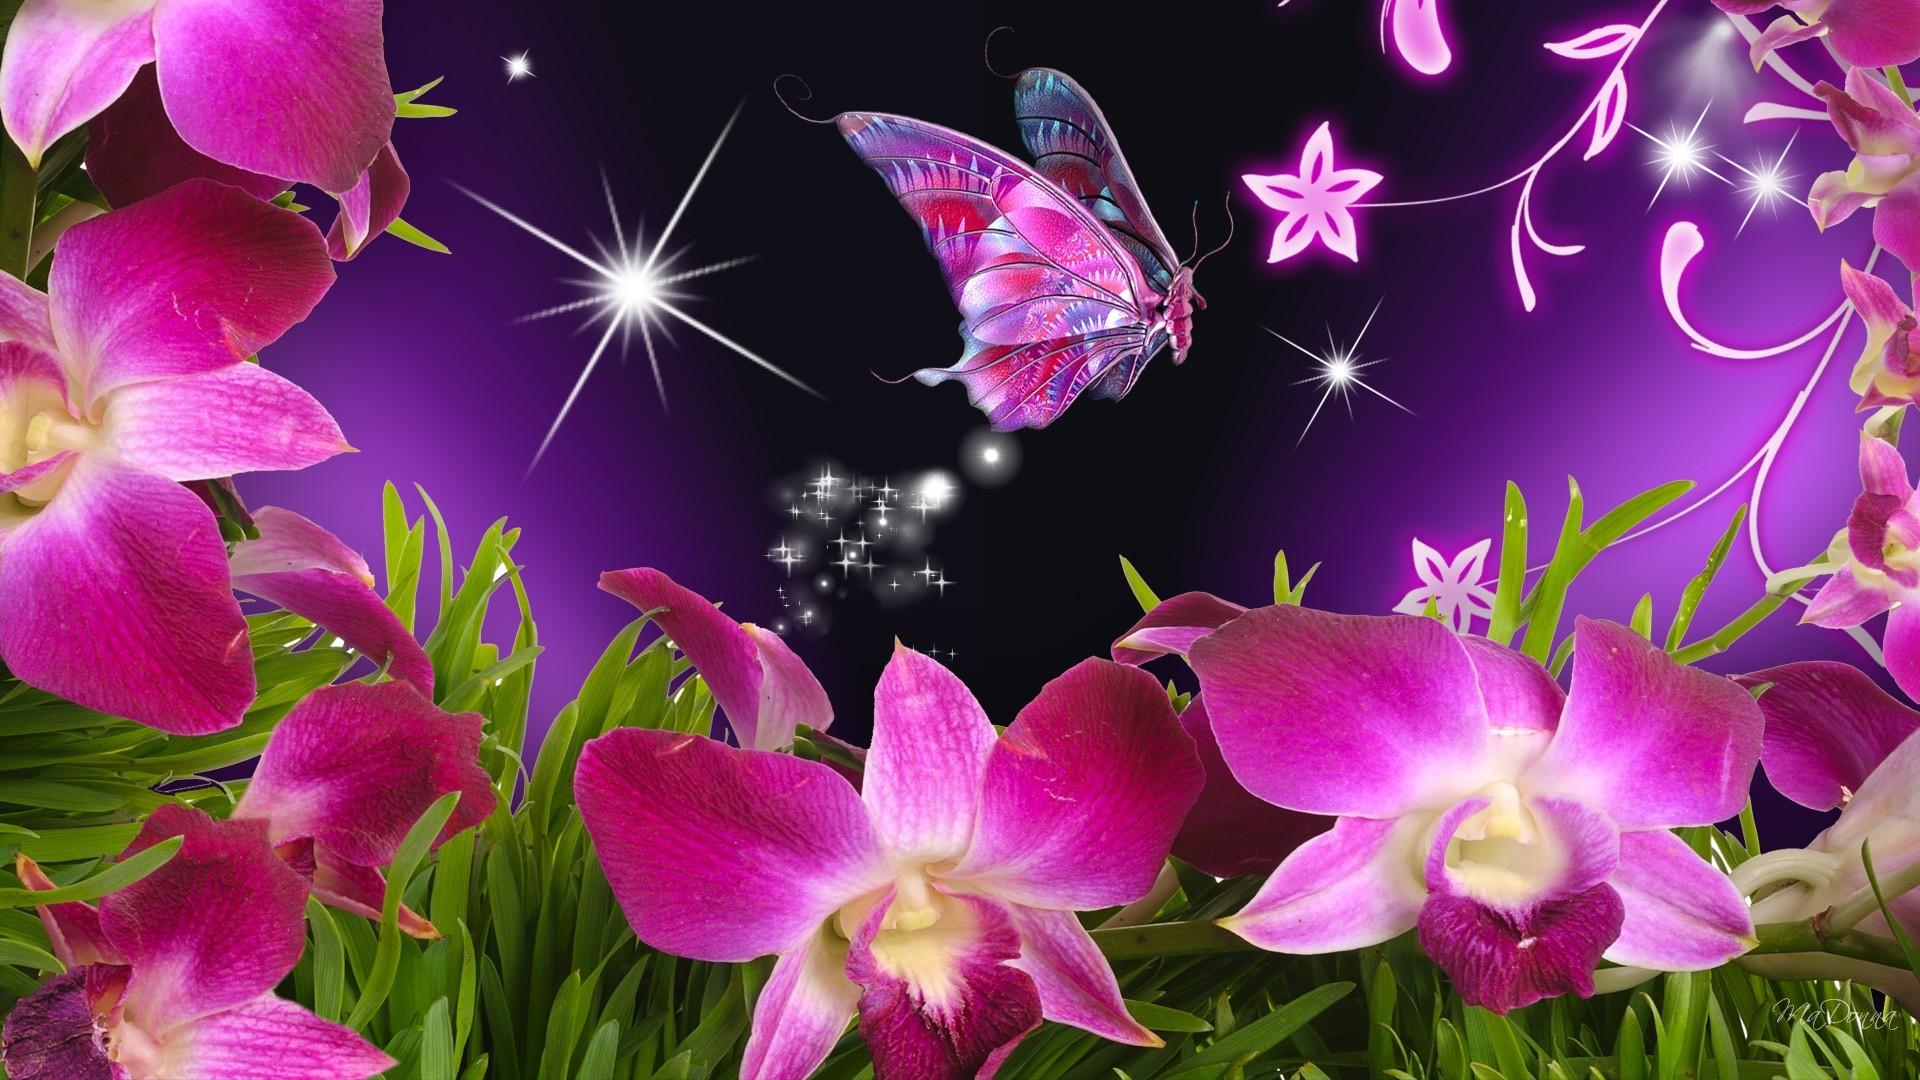 Flowers For > Beautiful Flowers And Butterflies Wallpapers | wallpapers,themes,ect.  | Pinterest | Butterfly wallpaper, Wallpaper and Illustrations